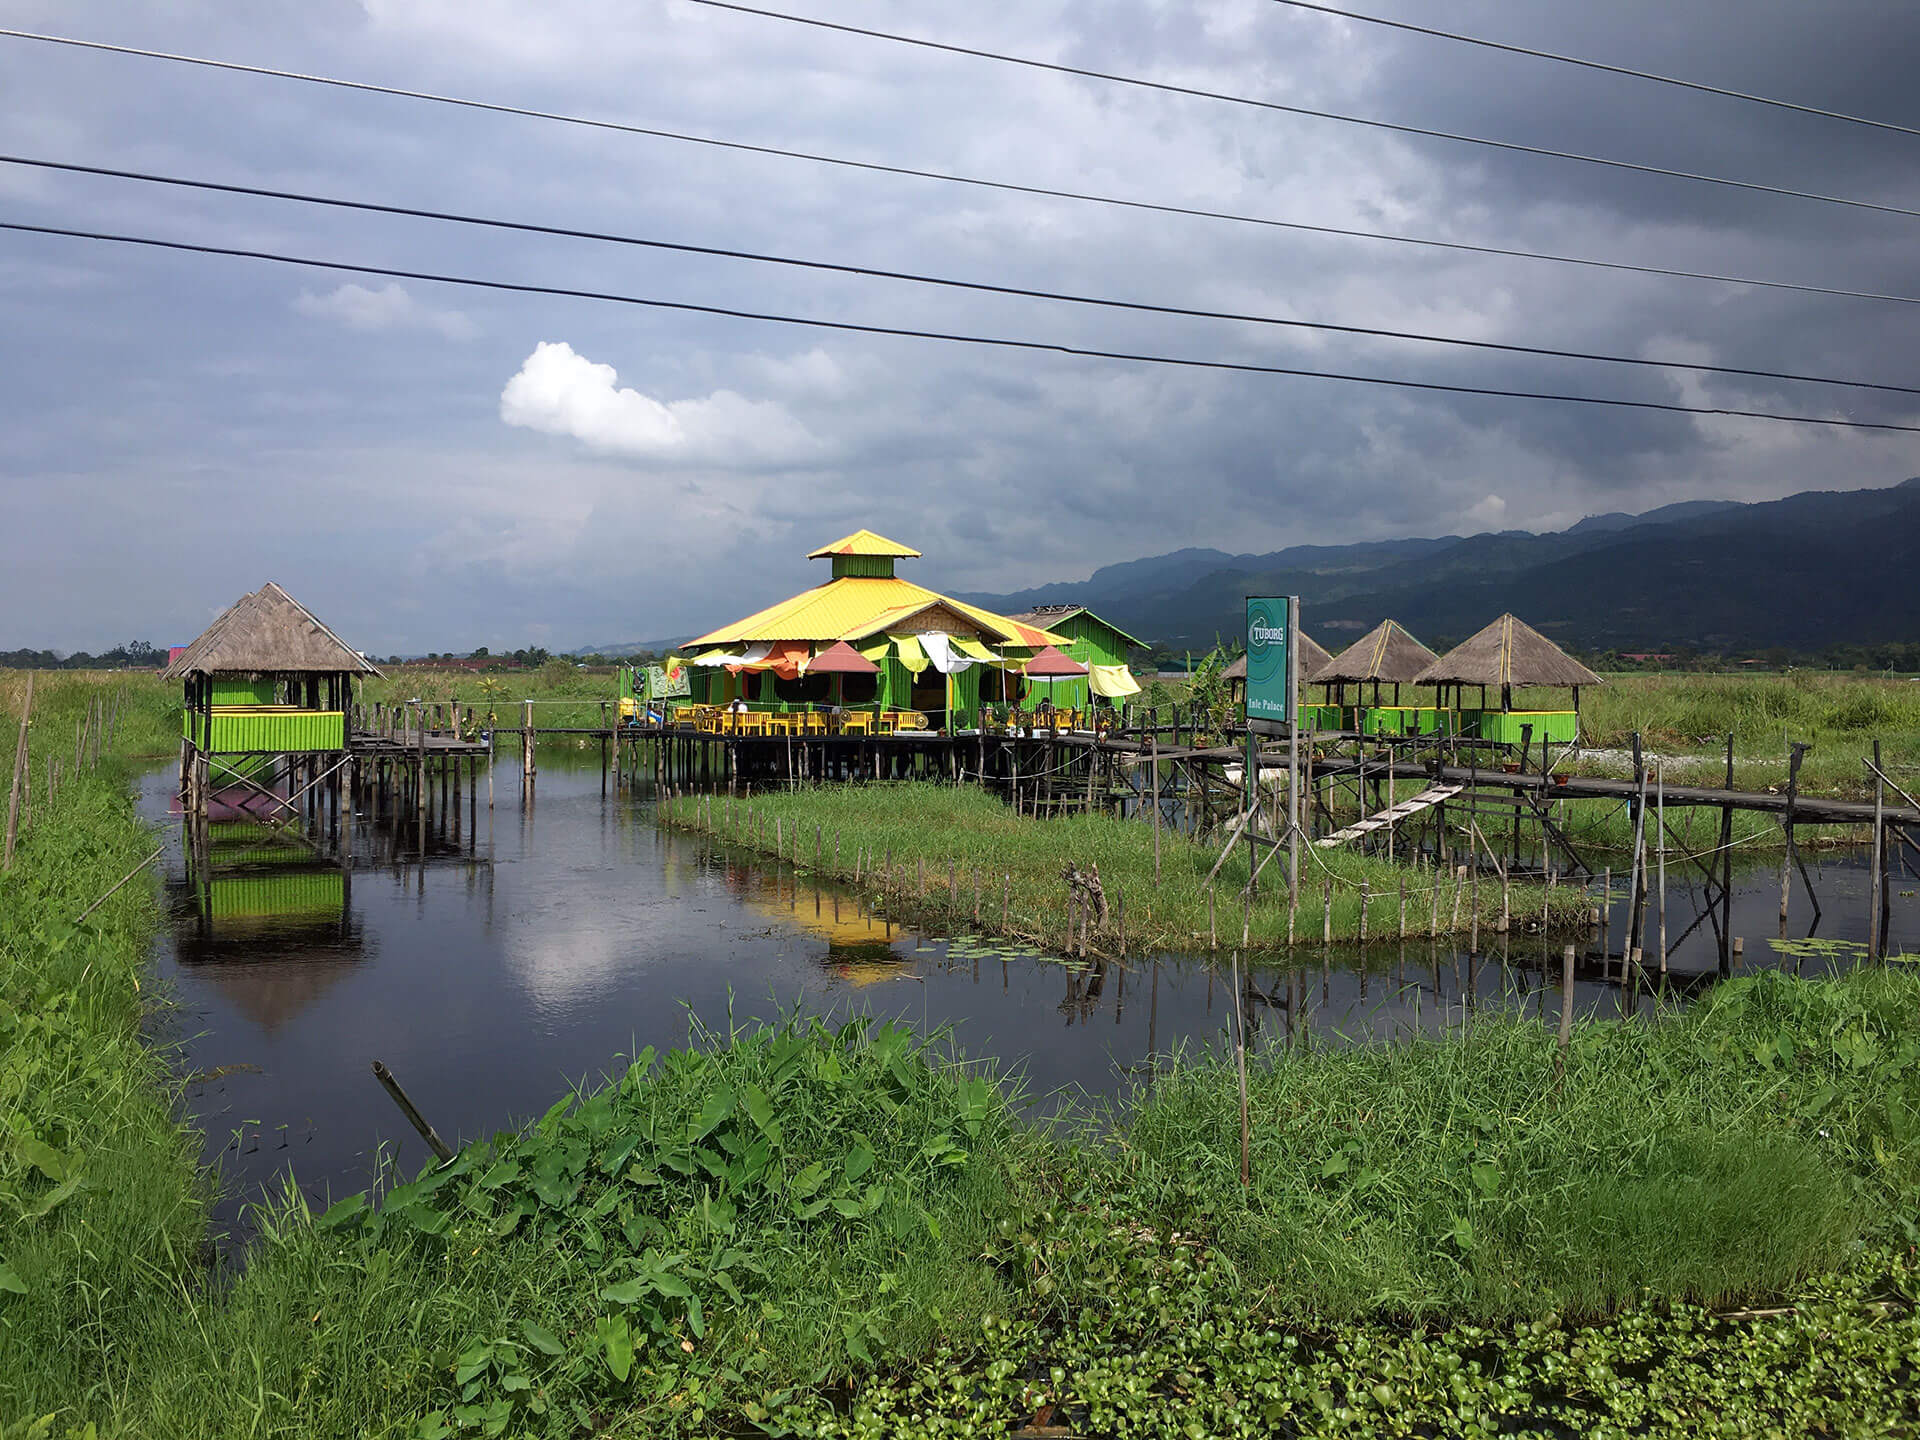 Maing Thauk am Inle Lake